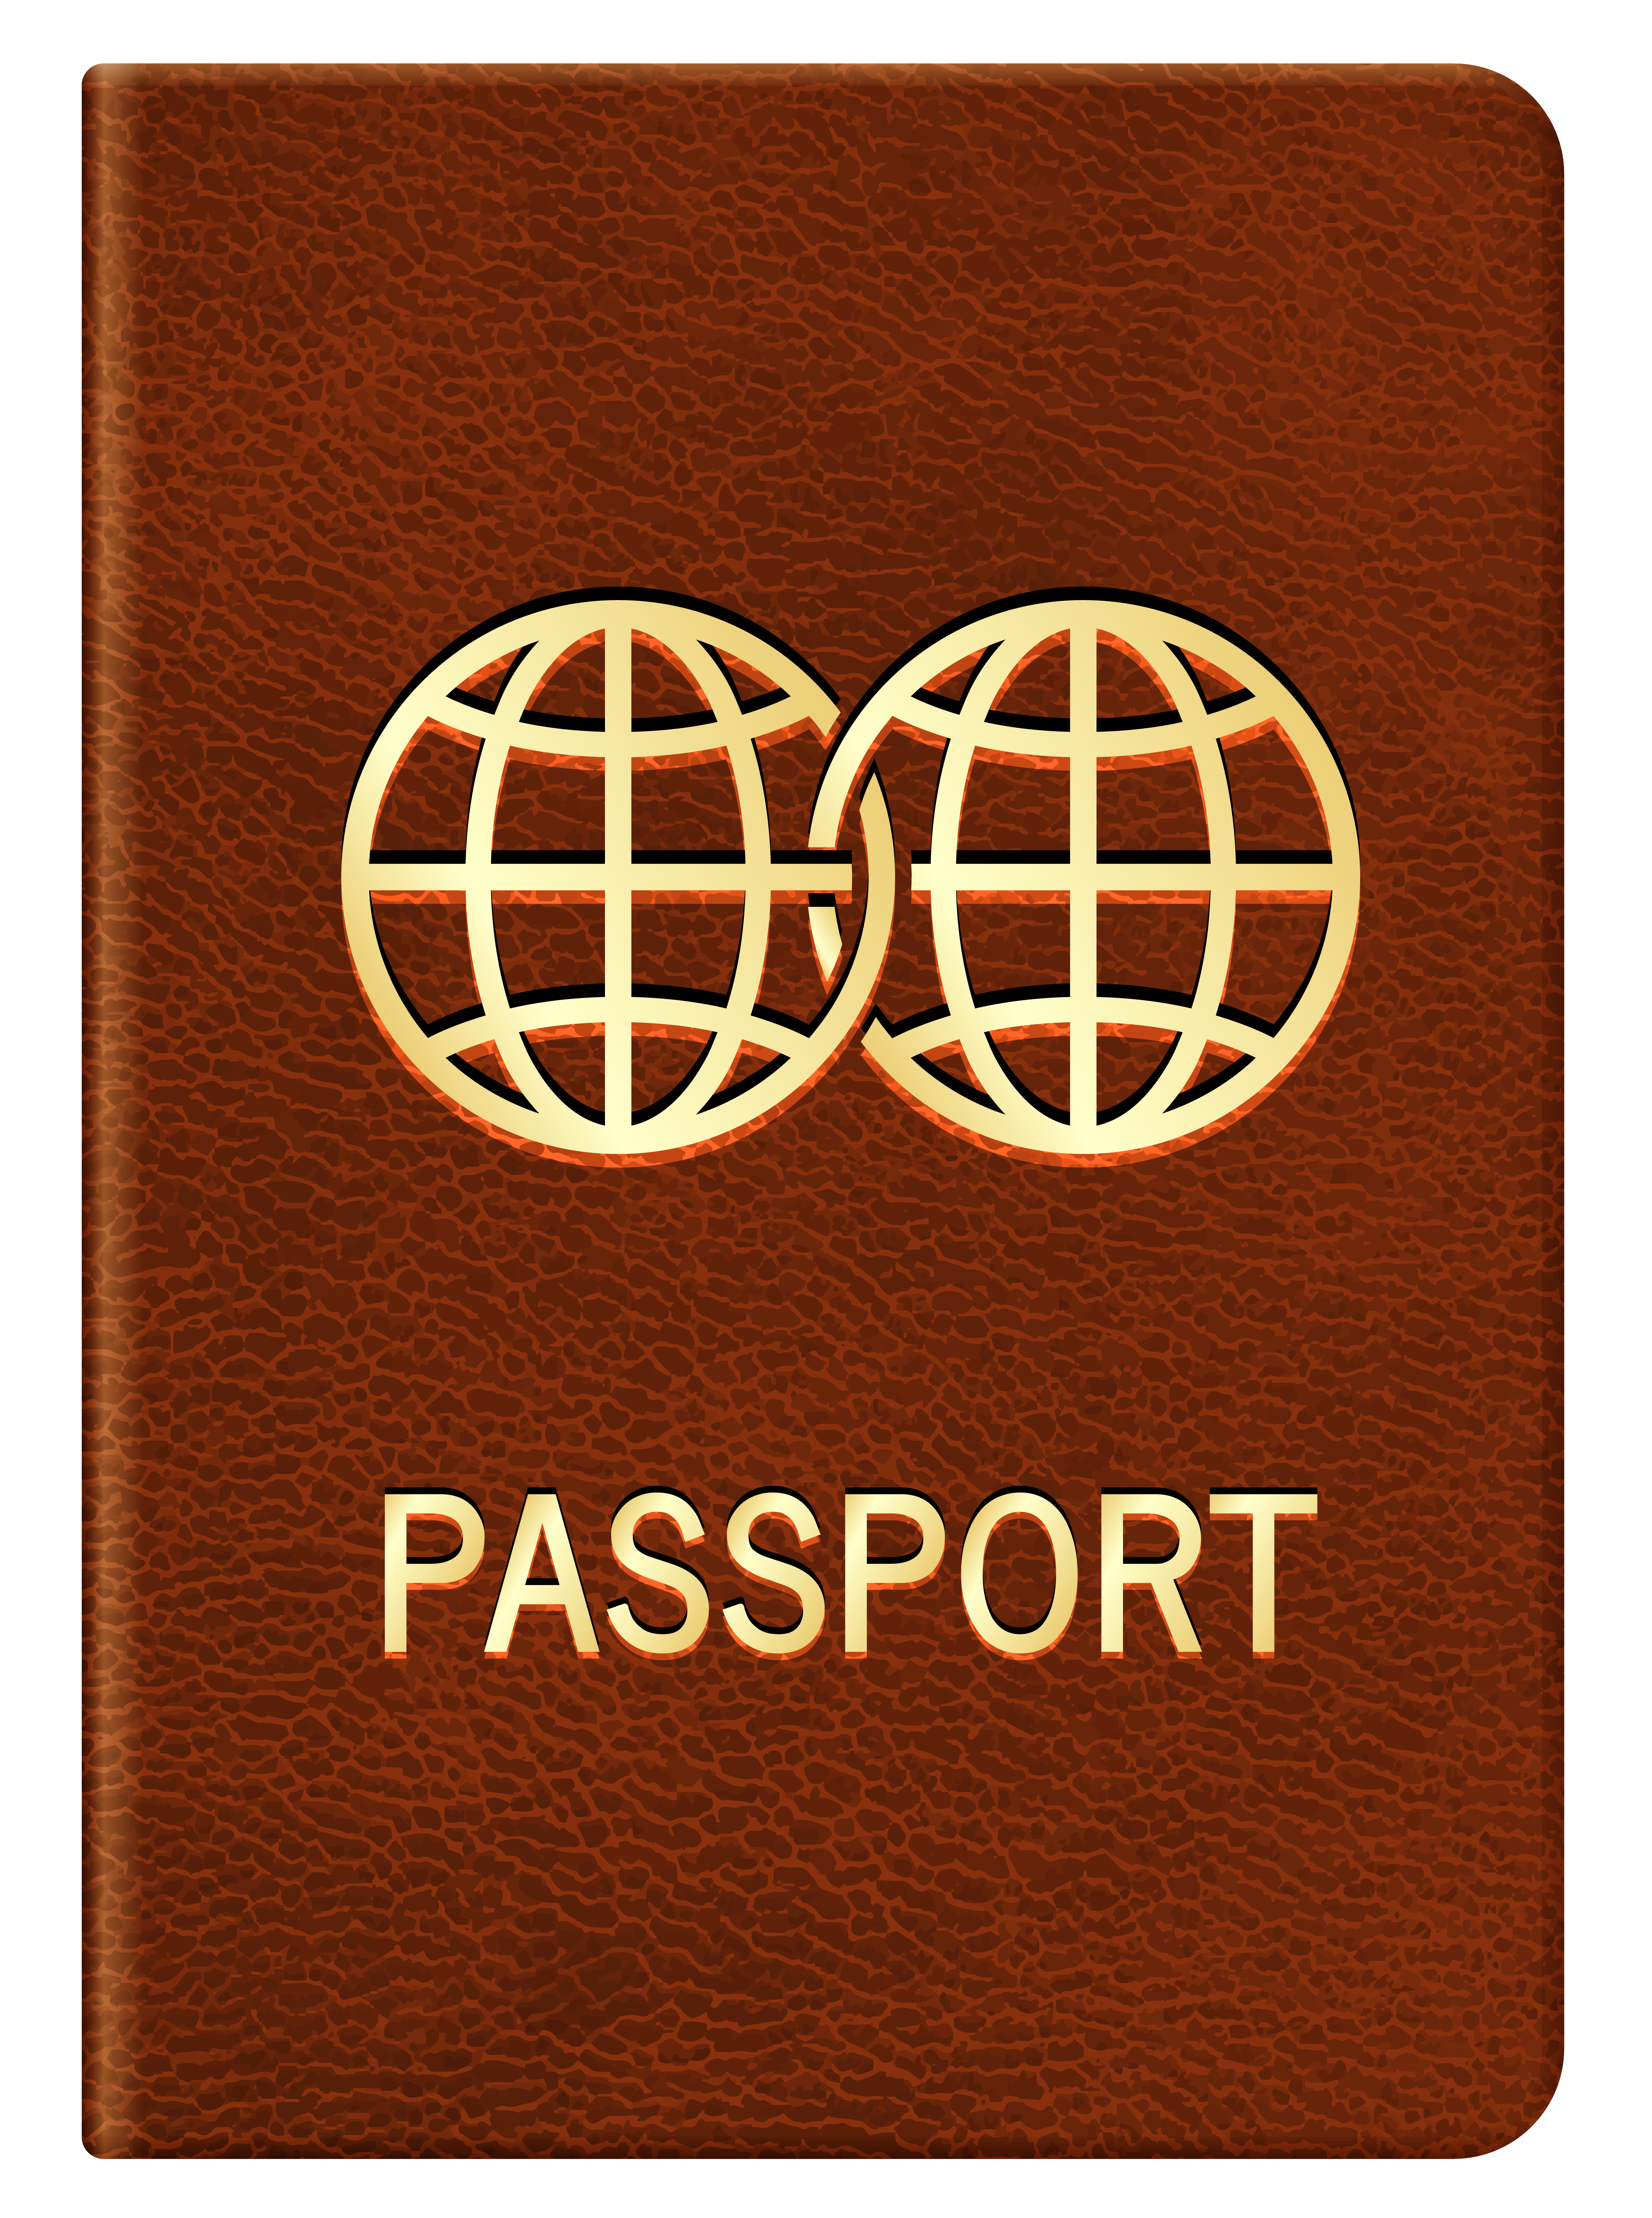 Passport clipart. Png image gallery yopriceville